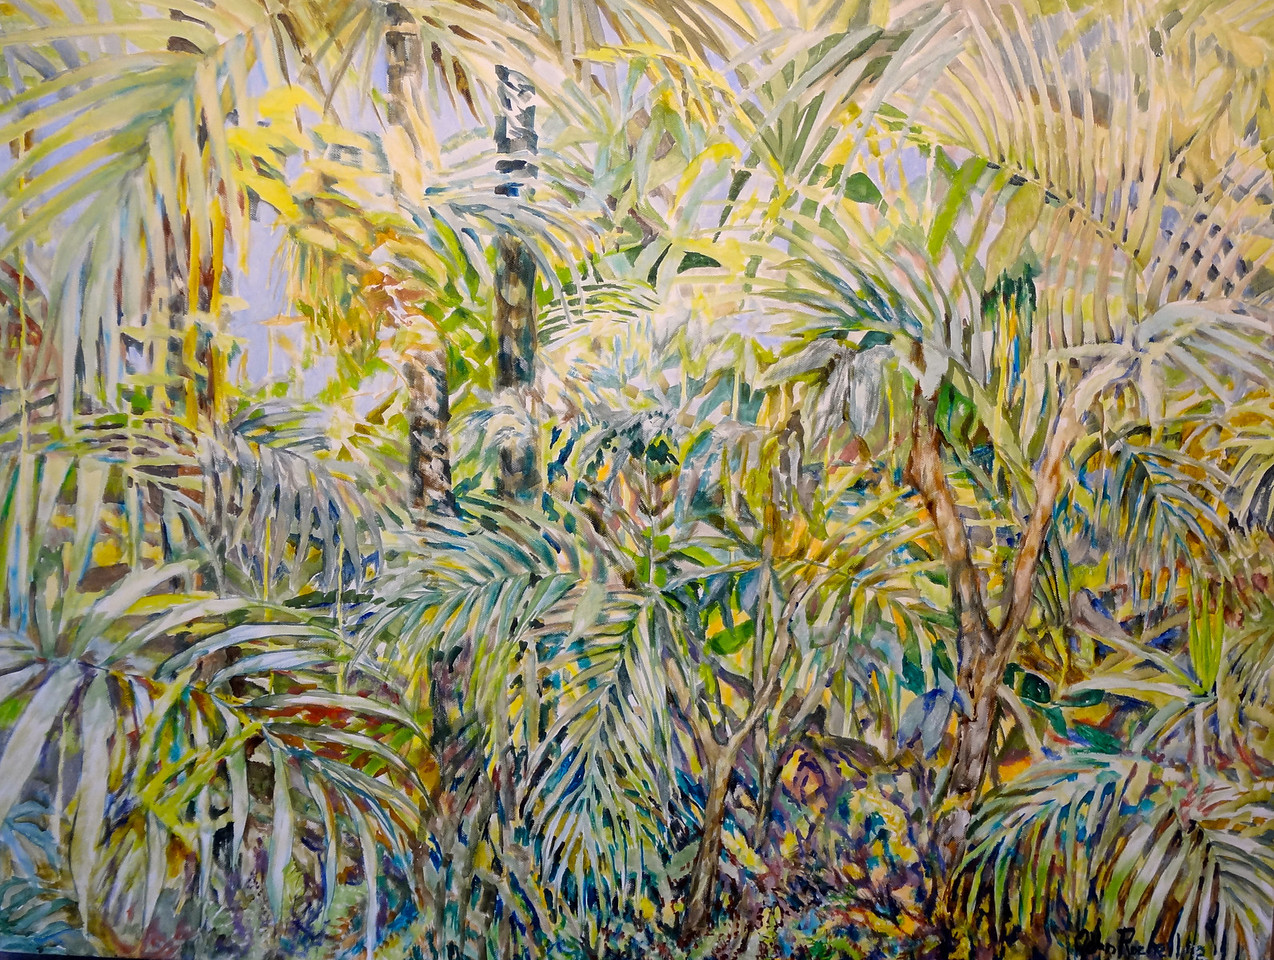 """© 2012 John Rachell Title: Garden, March 17, 2012 Image Size: 40"""" W by 30"""" D Dated: 2012 Medium and Support: Oil paint on canvas Signed: LR Signature"""